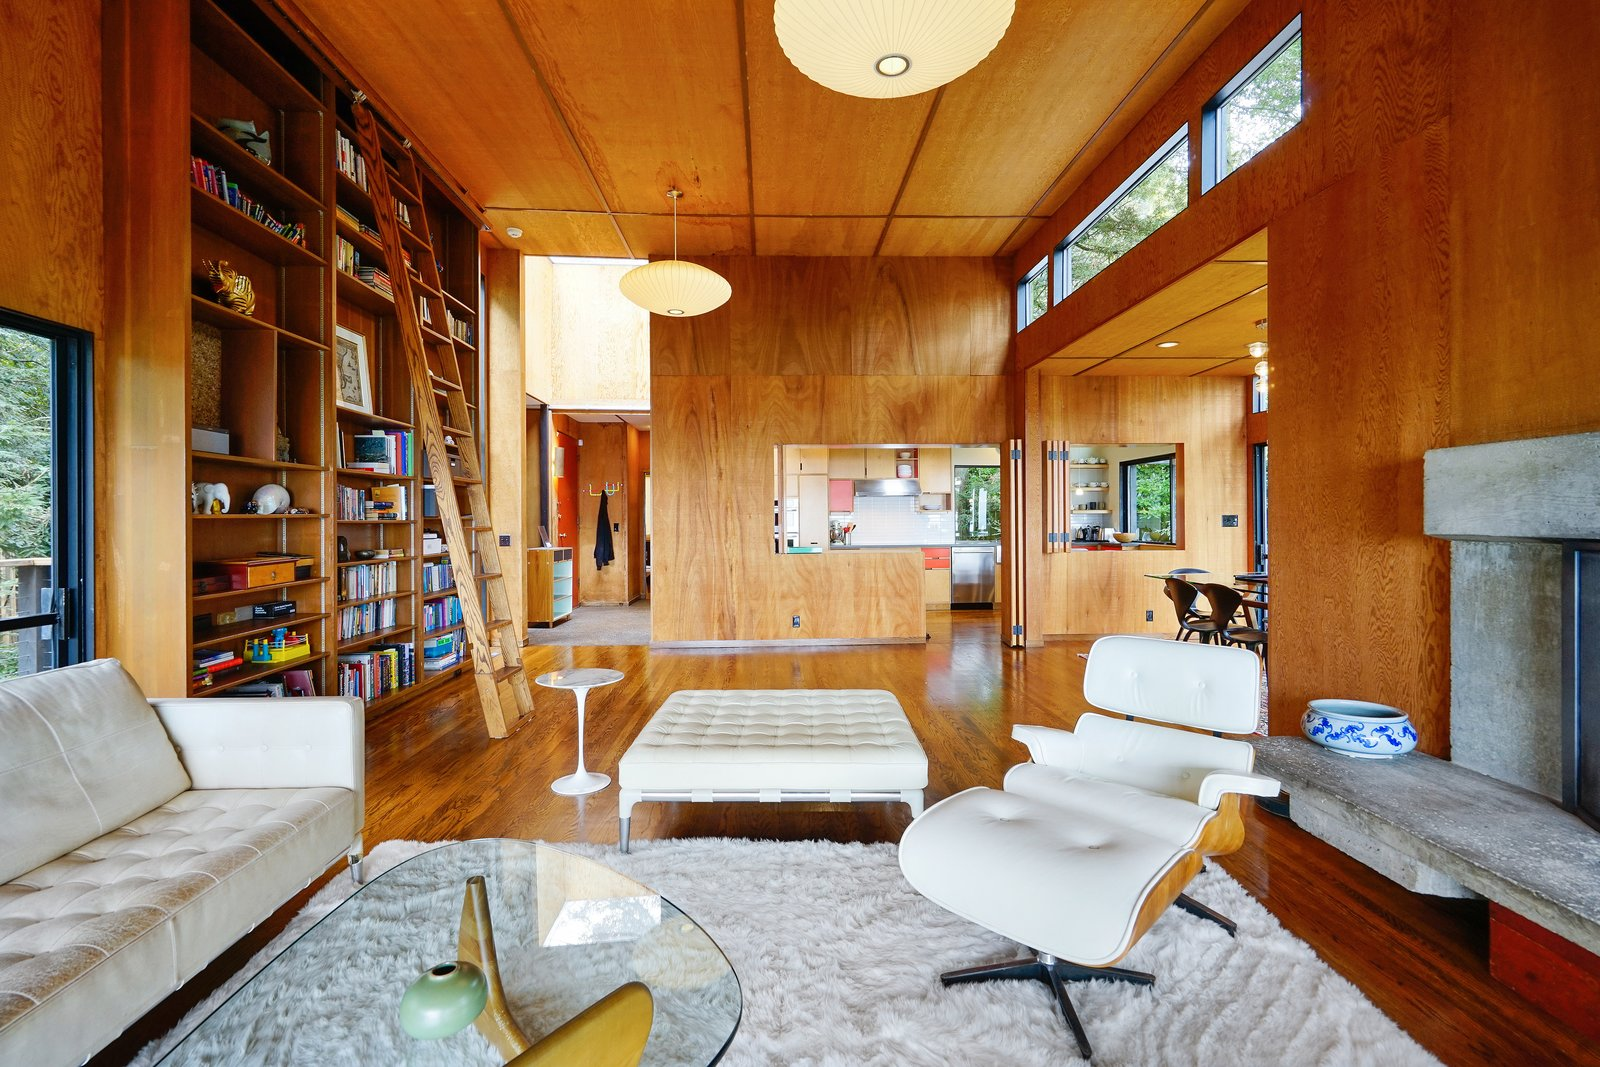 Living, Storage, Sofa, Ottomans, Coffee Tables, End Tables, Shelves, Standard Layout, Wood Burning, Chair, Medium Hardwood, Rug, Pendant, and Recessed The living room boasts original wood paneled ceiling and walls, and beautiful built-in bookshelves.  Living Medium Hardwood Standard Layout Storage Photos from This Knockout Midcentury in the Bay Area Will Run You $1.9M